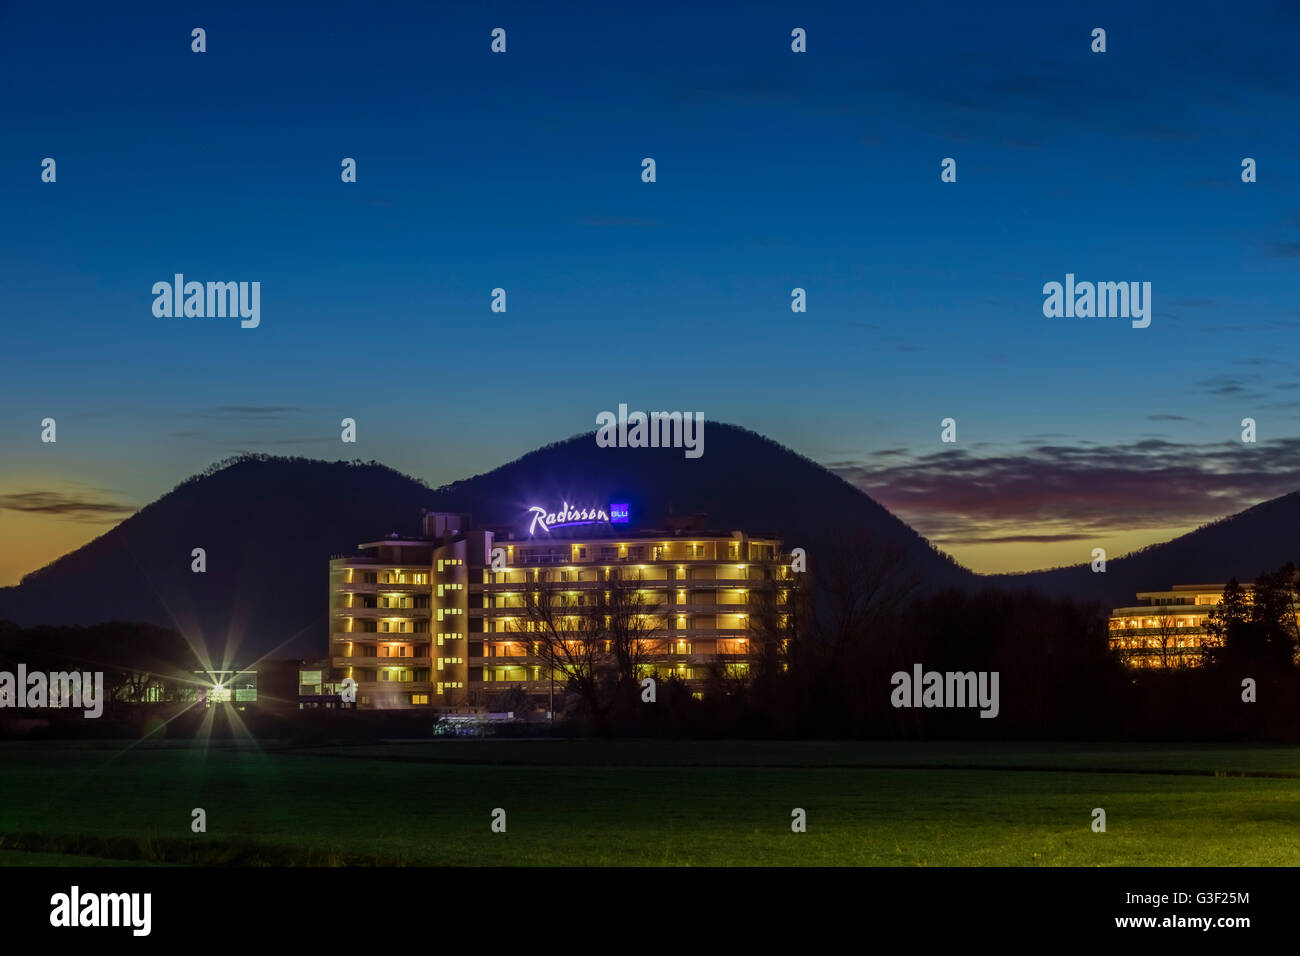 Hotel Radisson Blu Majestic, Italy, Veneto, Galzignano, Battaglia Therme, wellness, spa, sports, golf - Stock Image